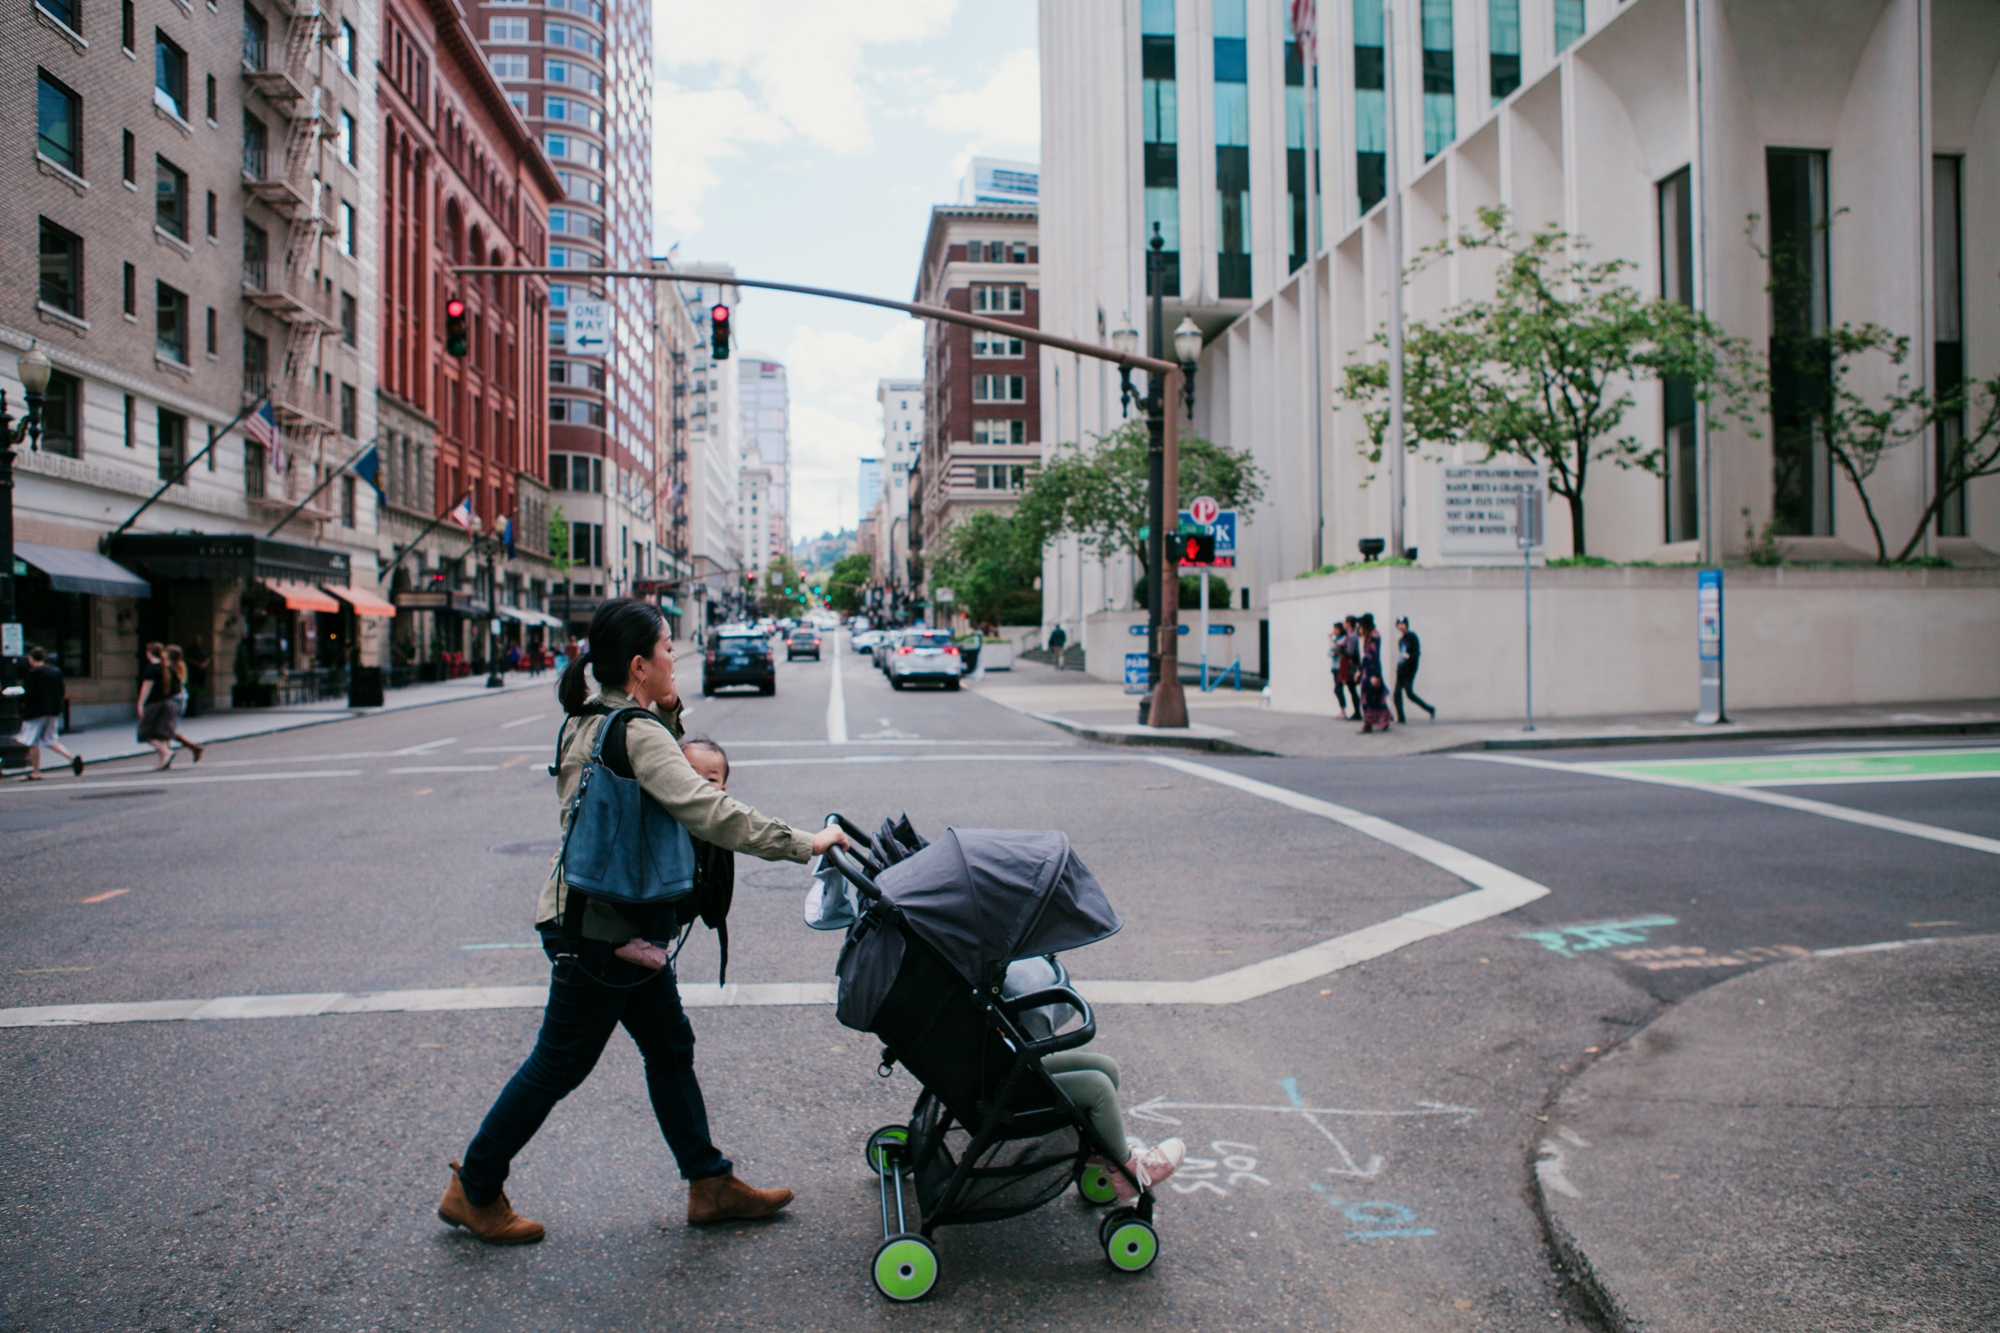 a day in the life photo session where we explore the city of Portland with The Suitcase Studio